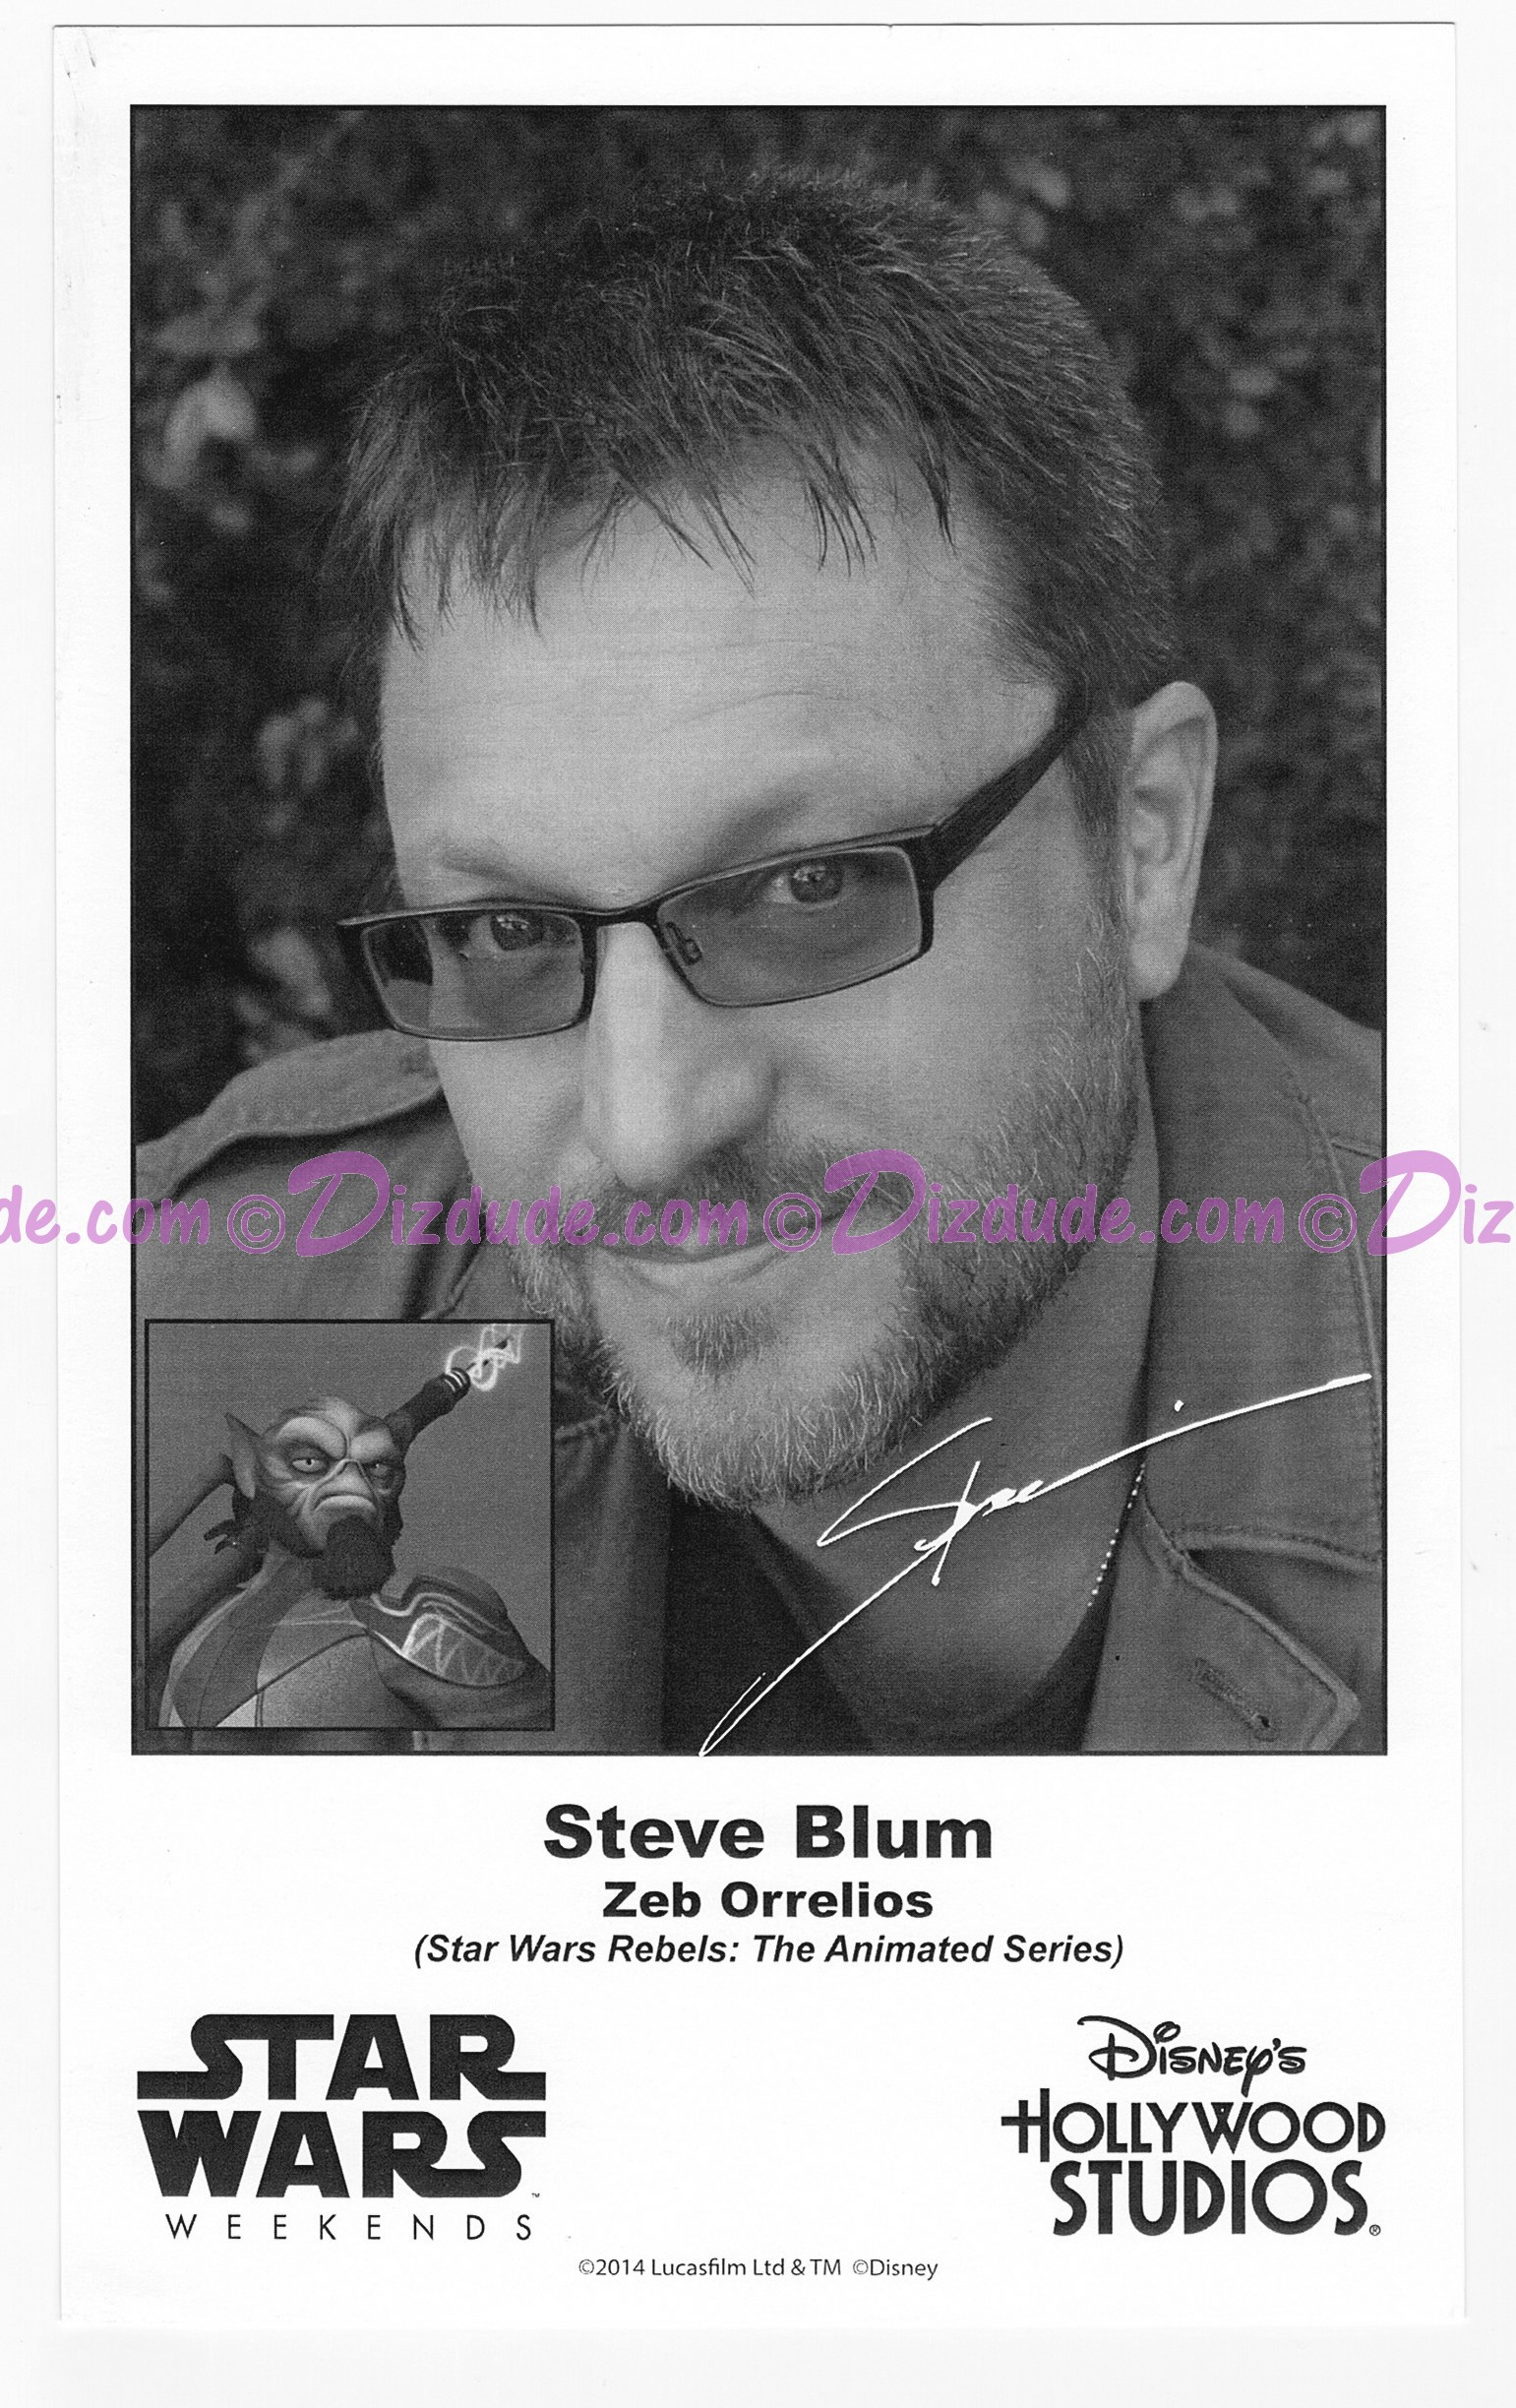 Steve Blum the voice of Garazeb ZEB Orrelios Presigned Official Star Wars Weekends 2014 Celebrity Collector Photo © Dizdude.com